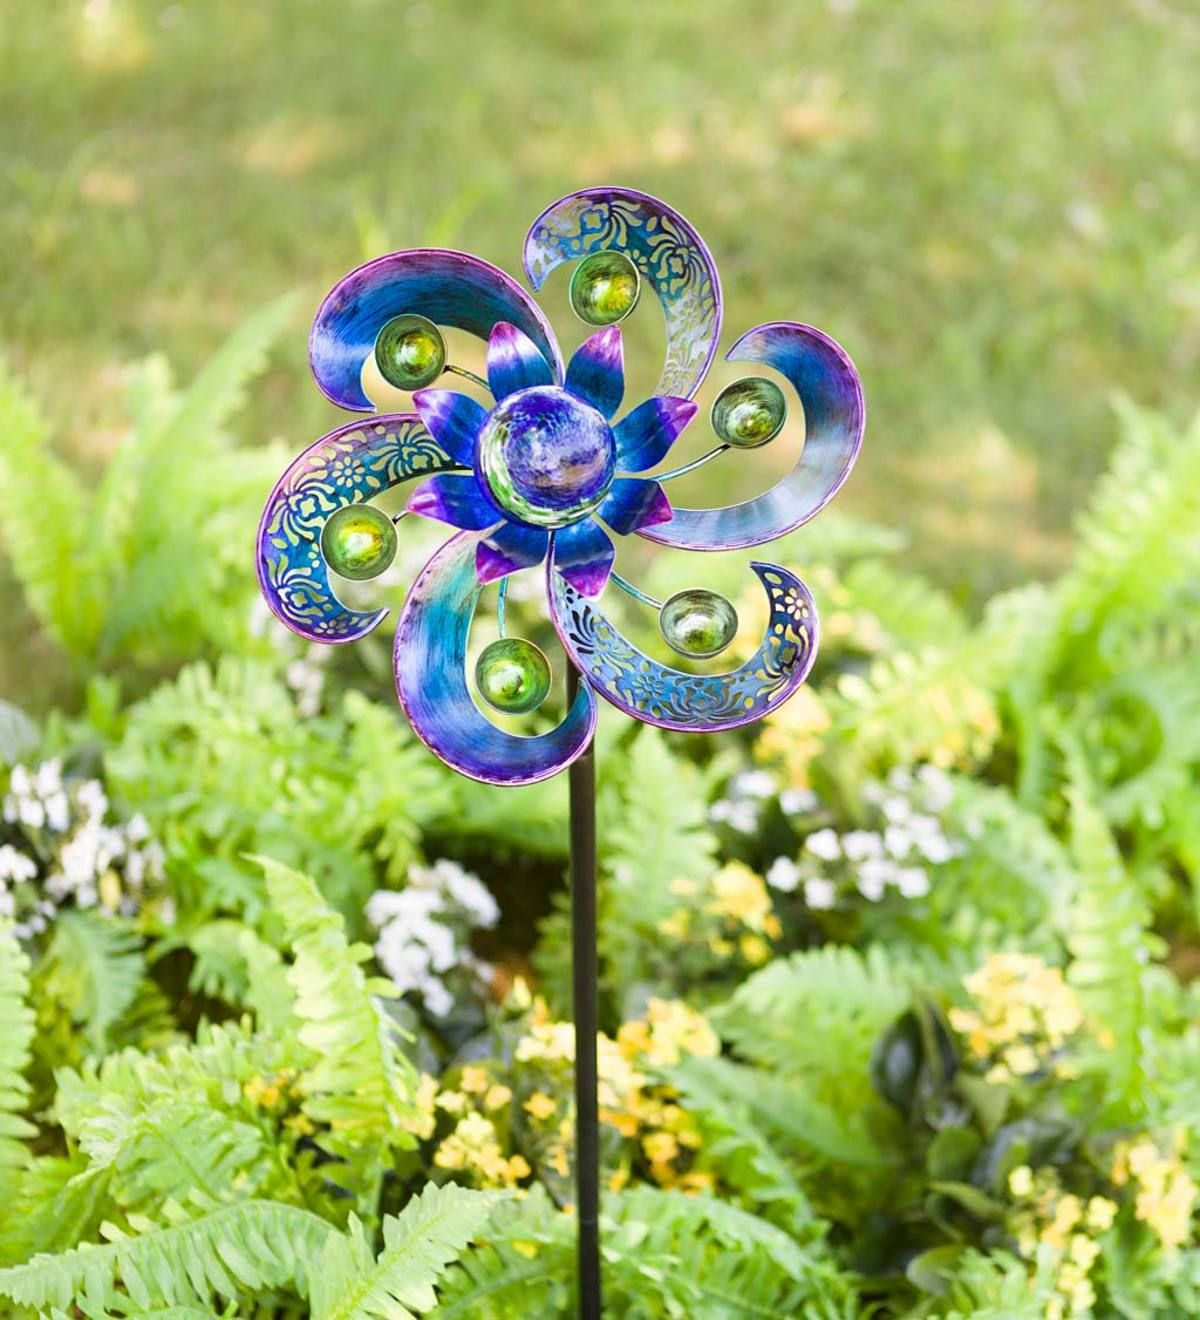 4 X Wind Spinners Pinwheels Multi-colors//birds  Garden Stakes Bird Decorations